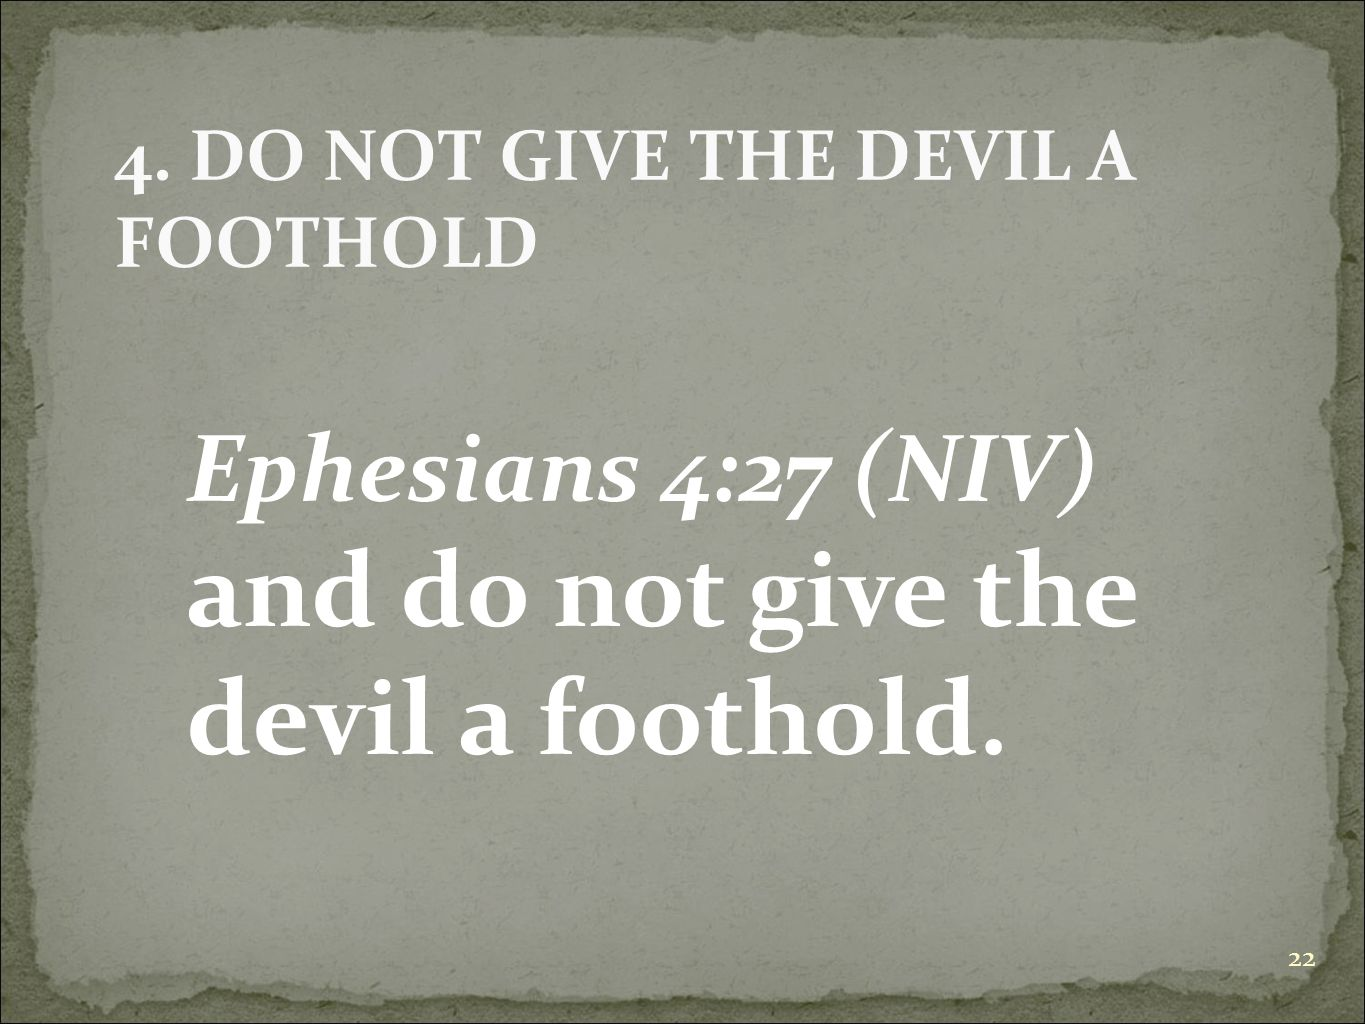 22 Ephesians 4:27 (NIV) and do not give the devil a foothold. 4. DO NOT GIVE THE DEVIL A FOOTHOLD